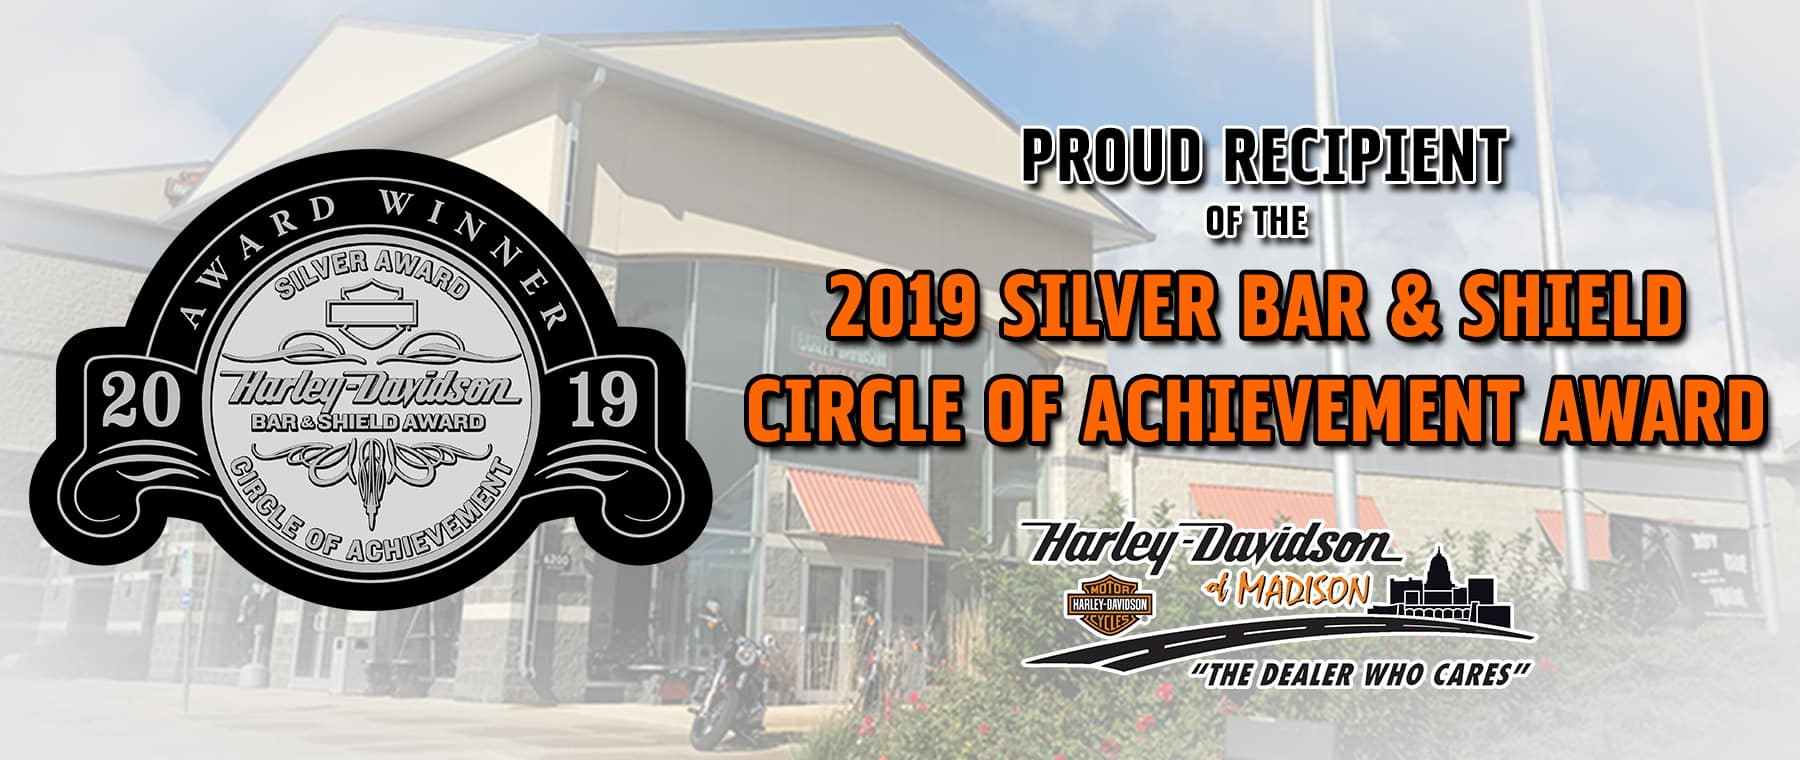 2019 Silver Bar and Shield Award Winner